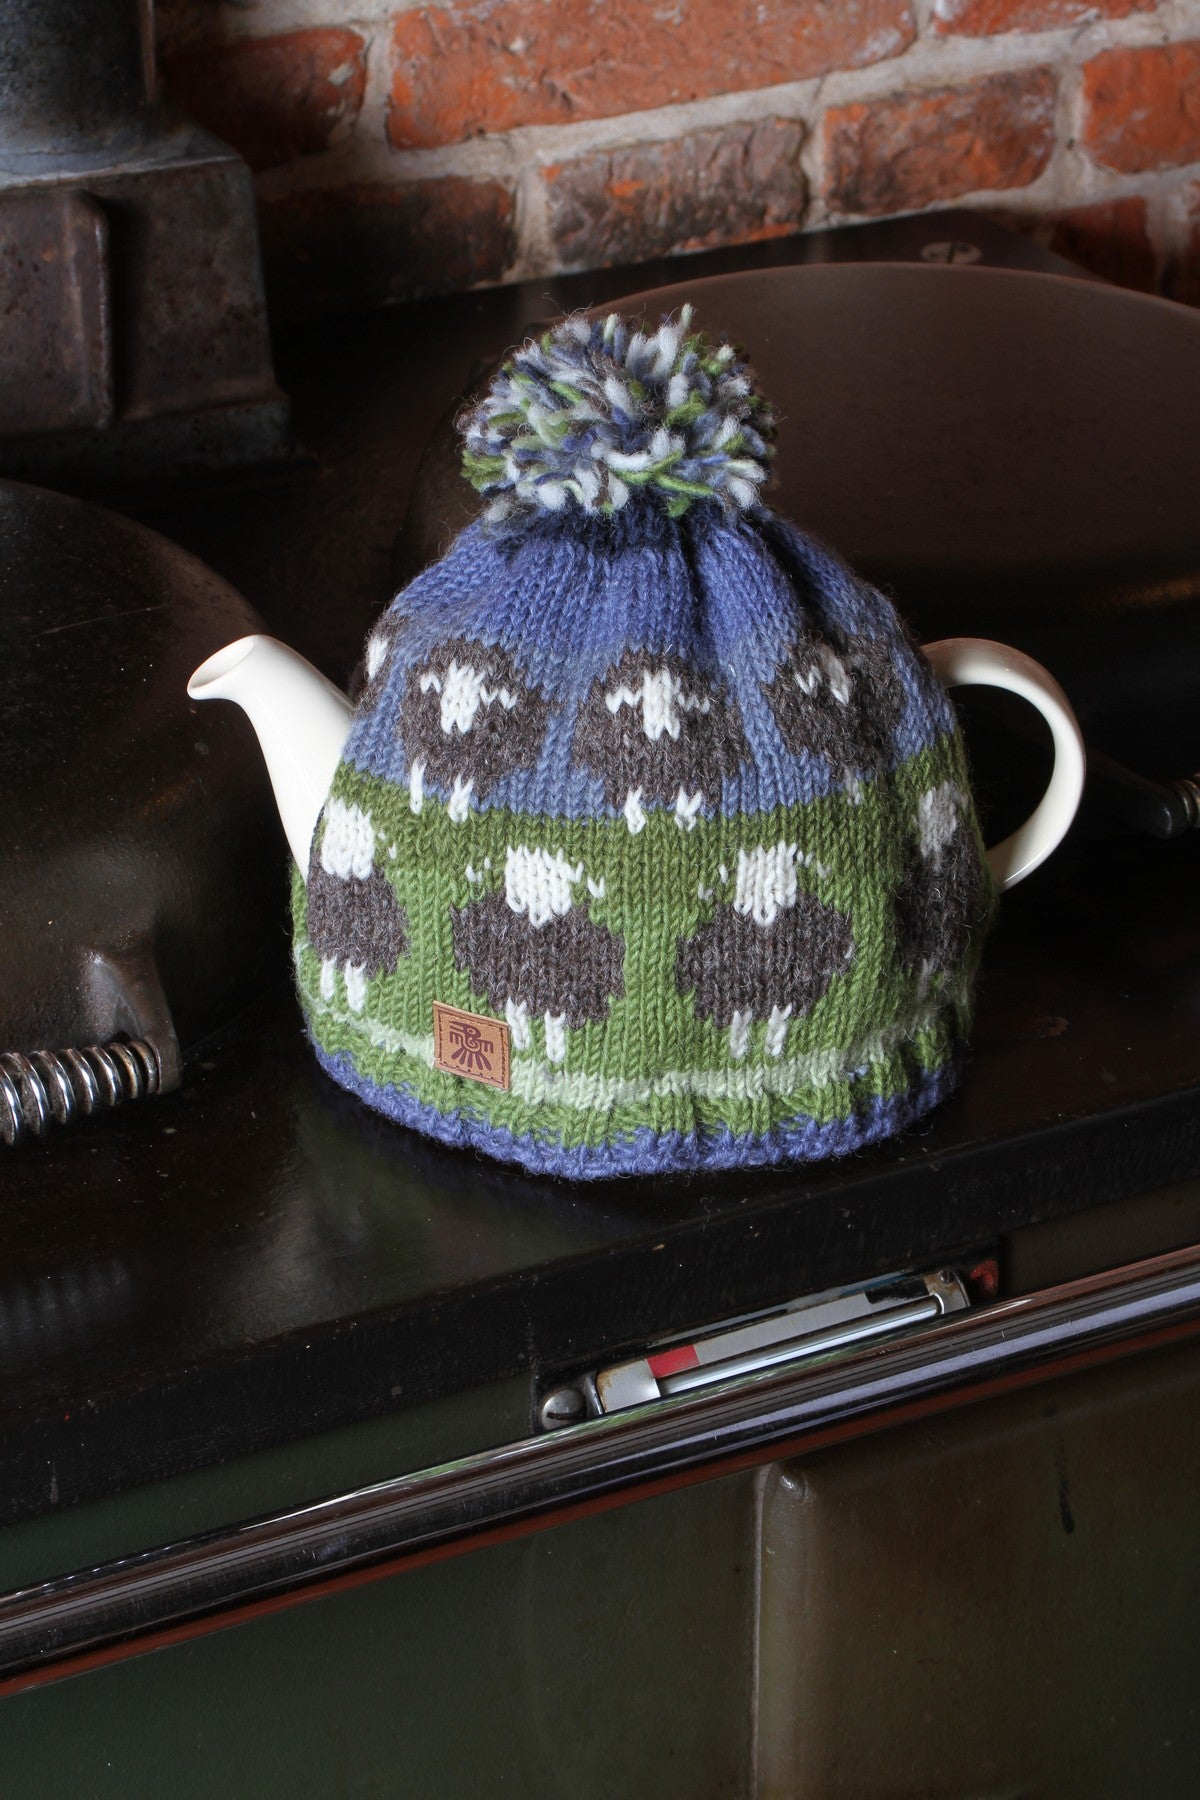 Pachamama Flock Of Herdwick Sheep Tea Cosy